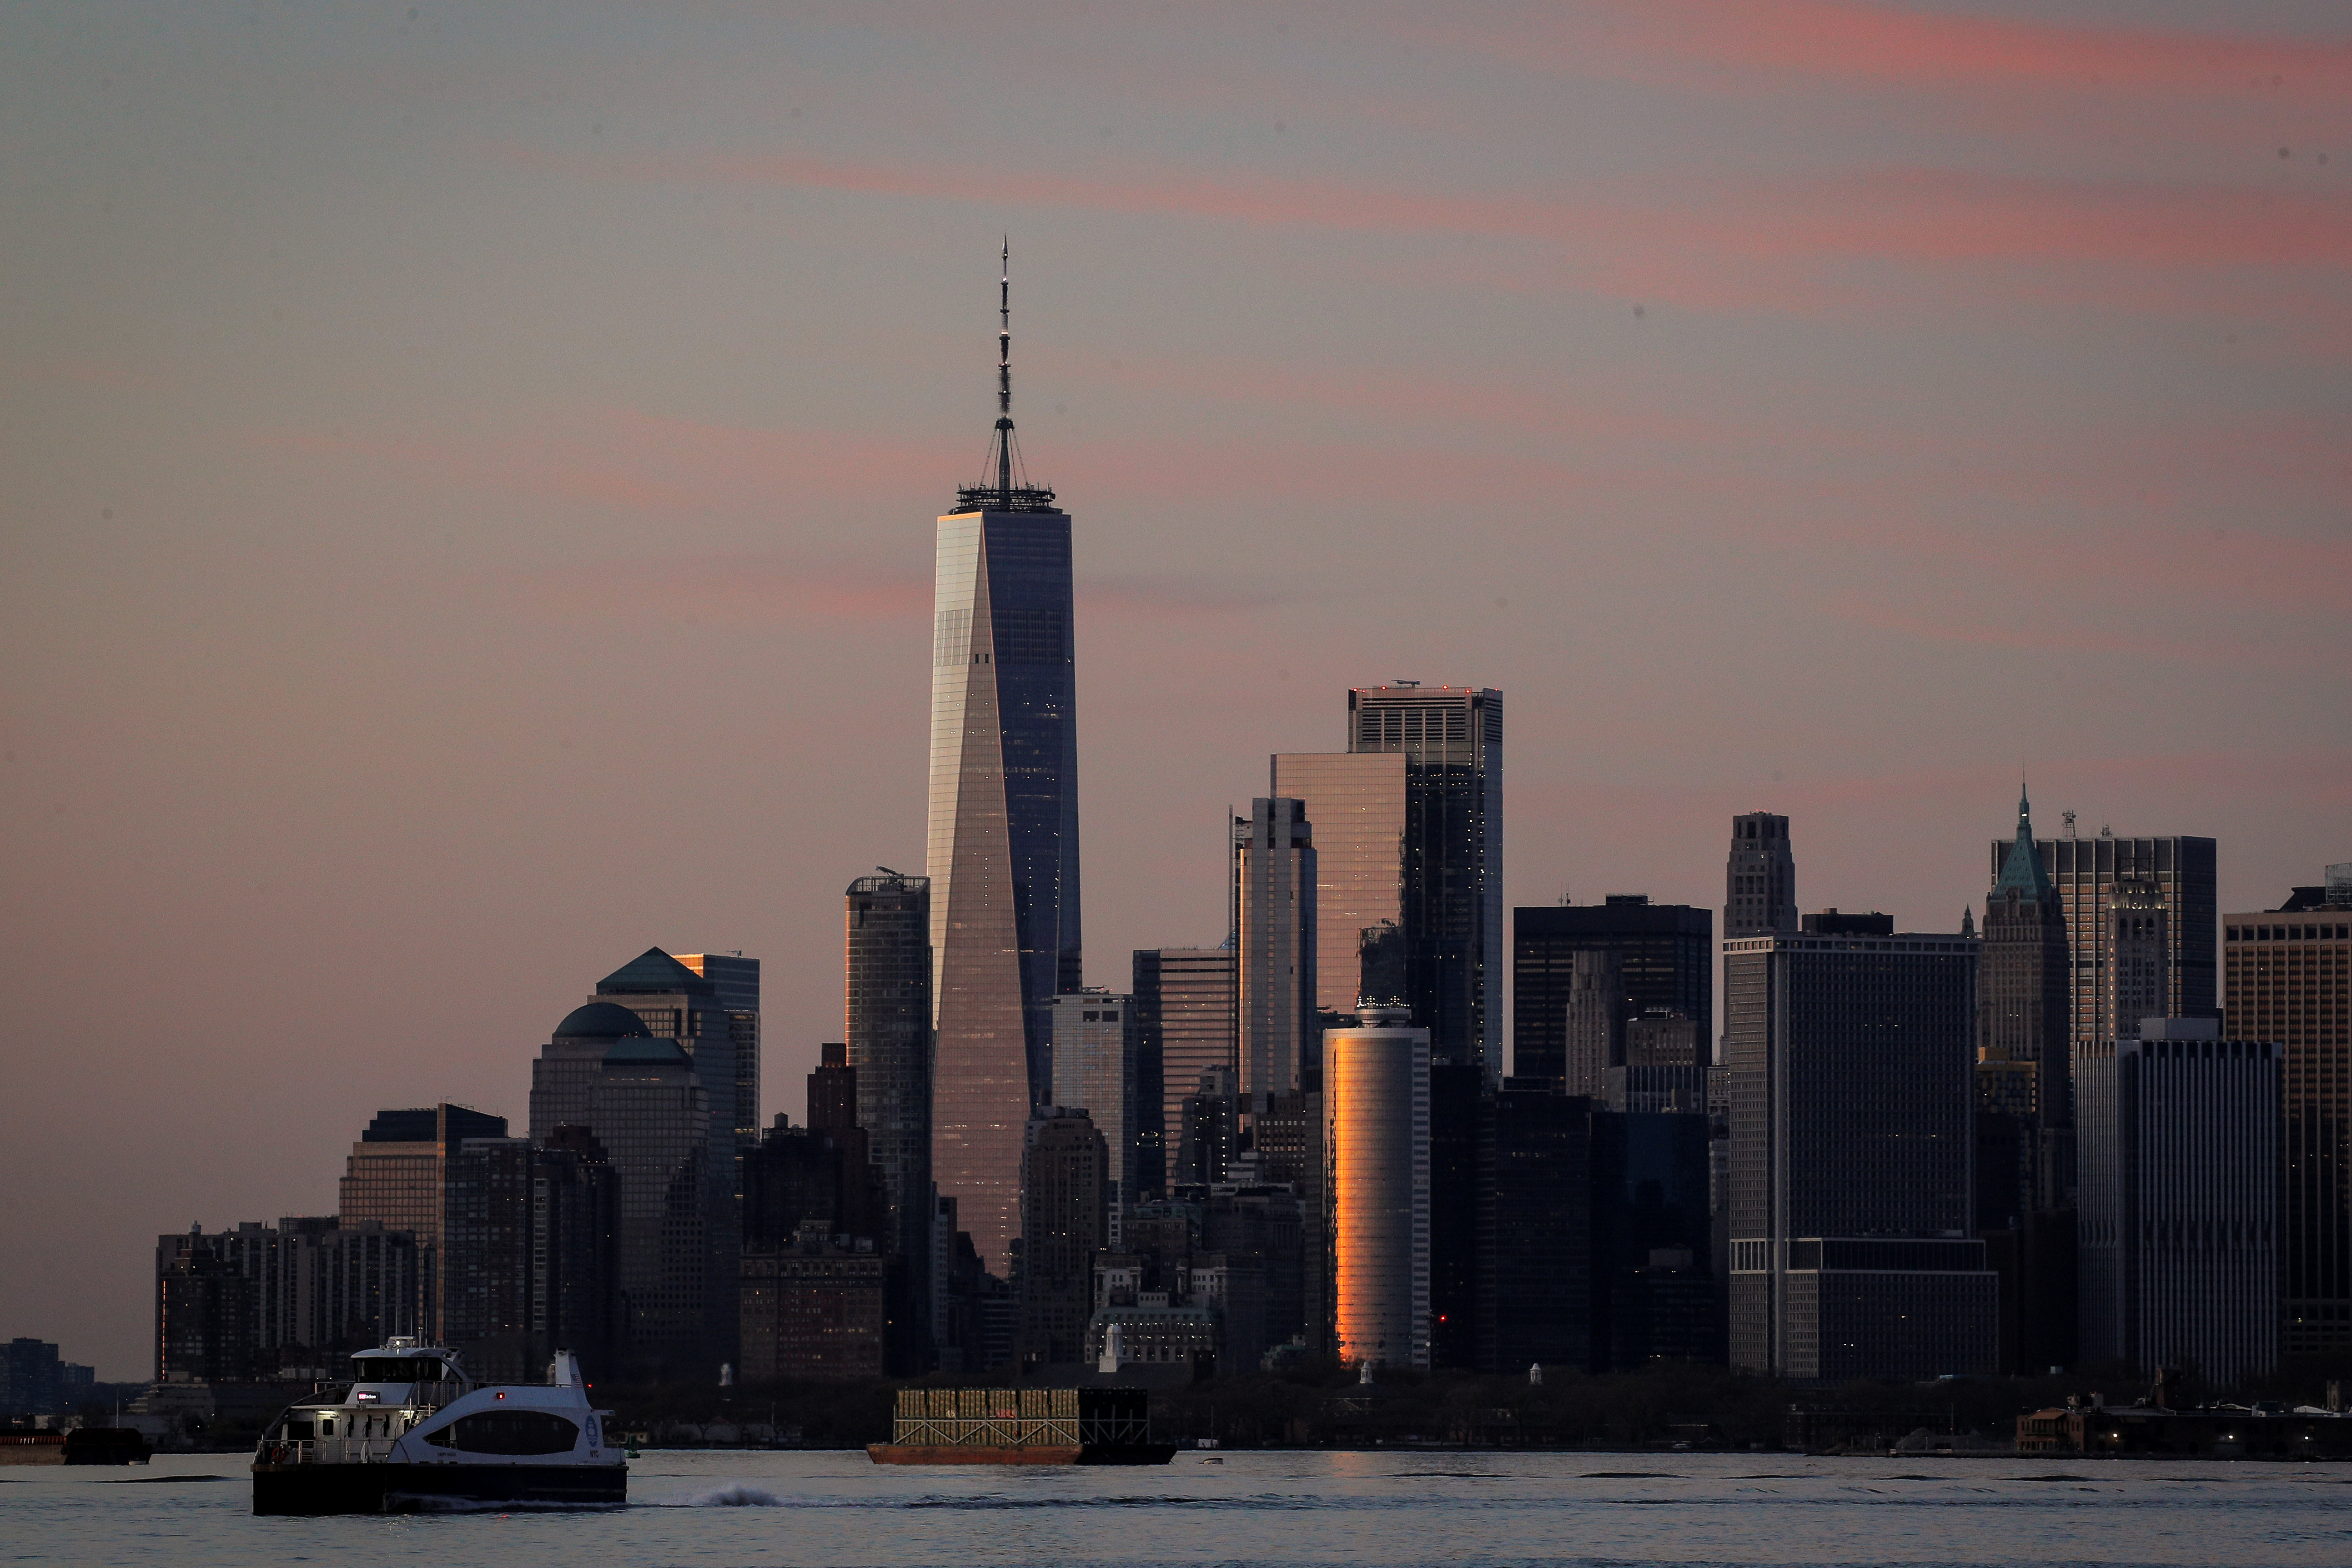 The Manhattan skyline is seen during sunset from the Brooklyn borough of New York City, during the outbreak of the coronavirus disease (COVID-19), U.S.,  April 20, 2020. REUTERS/Brendan McDermid